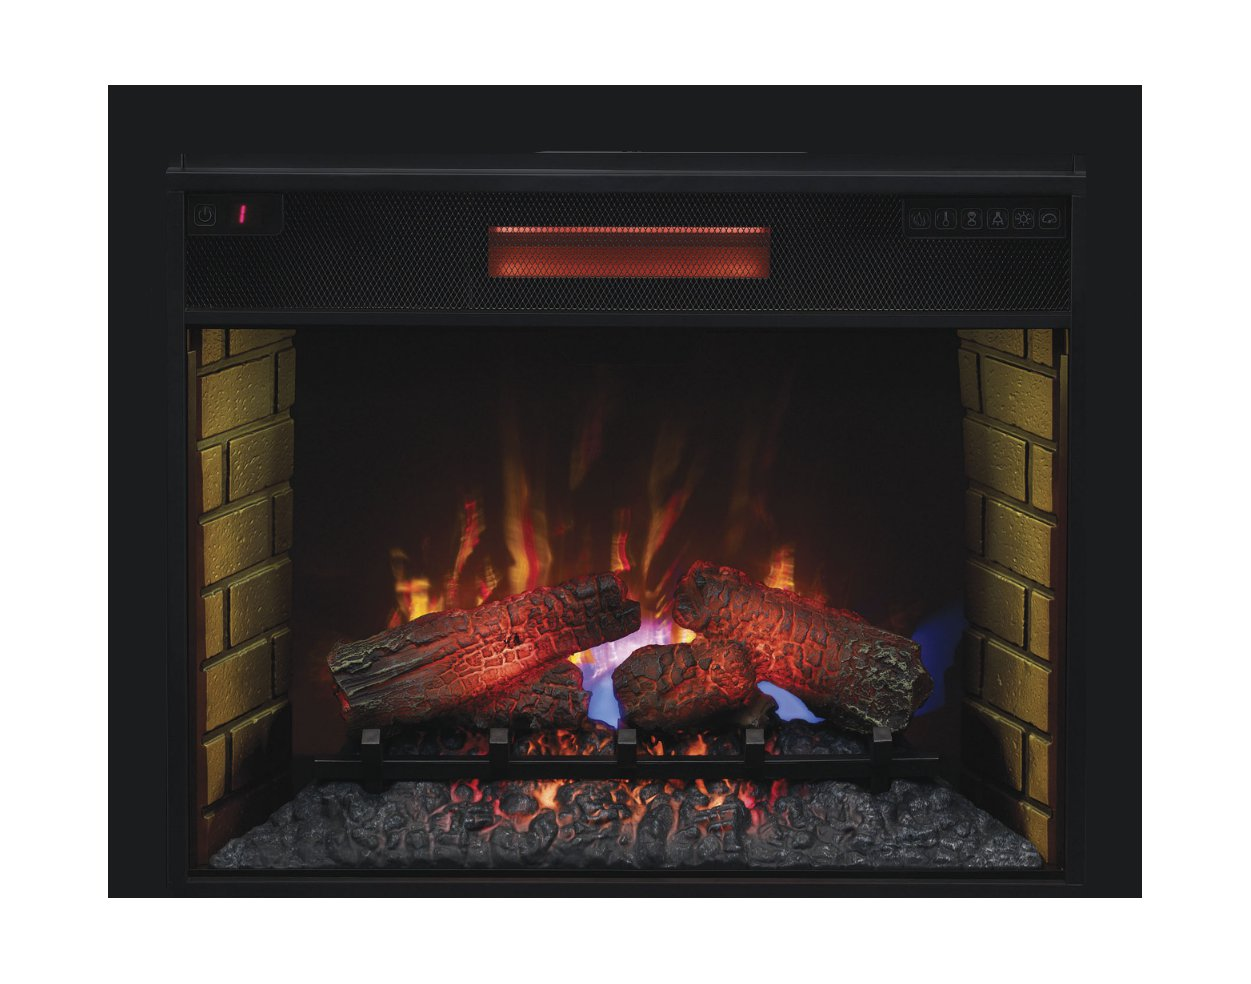 grate electric lowes clearance heater sale me fireplace on templum